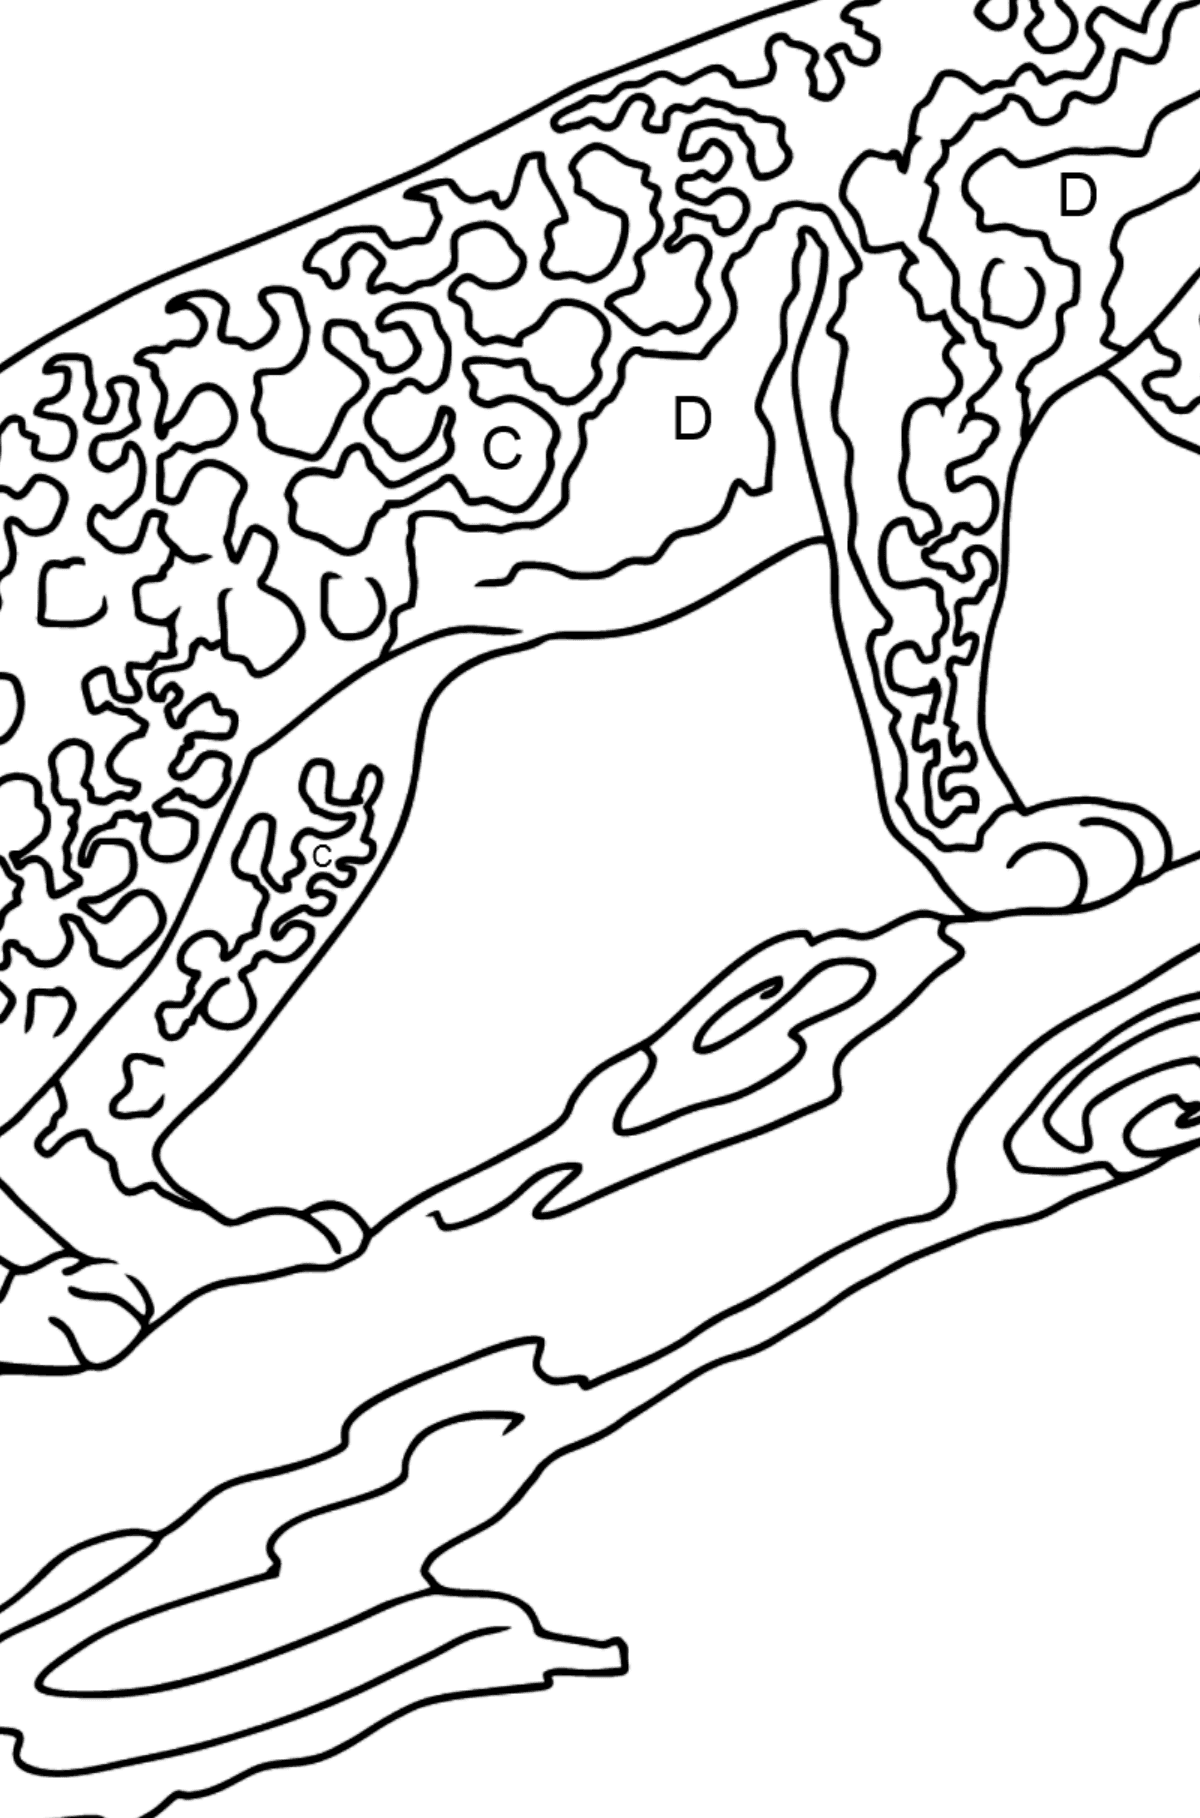 Coloring Page - A Leopard is Getting Ready for a Jump - Coloring by Letters for Kids